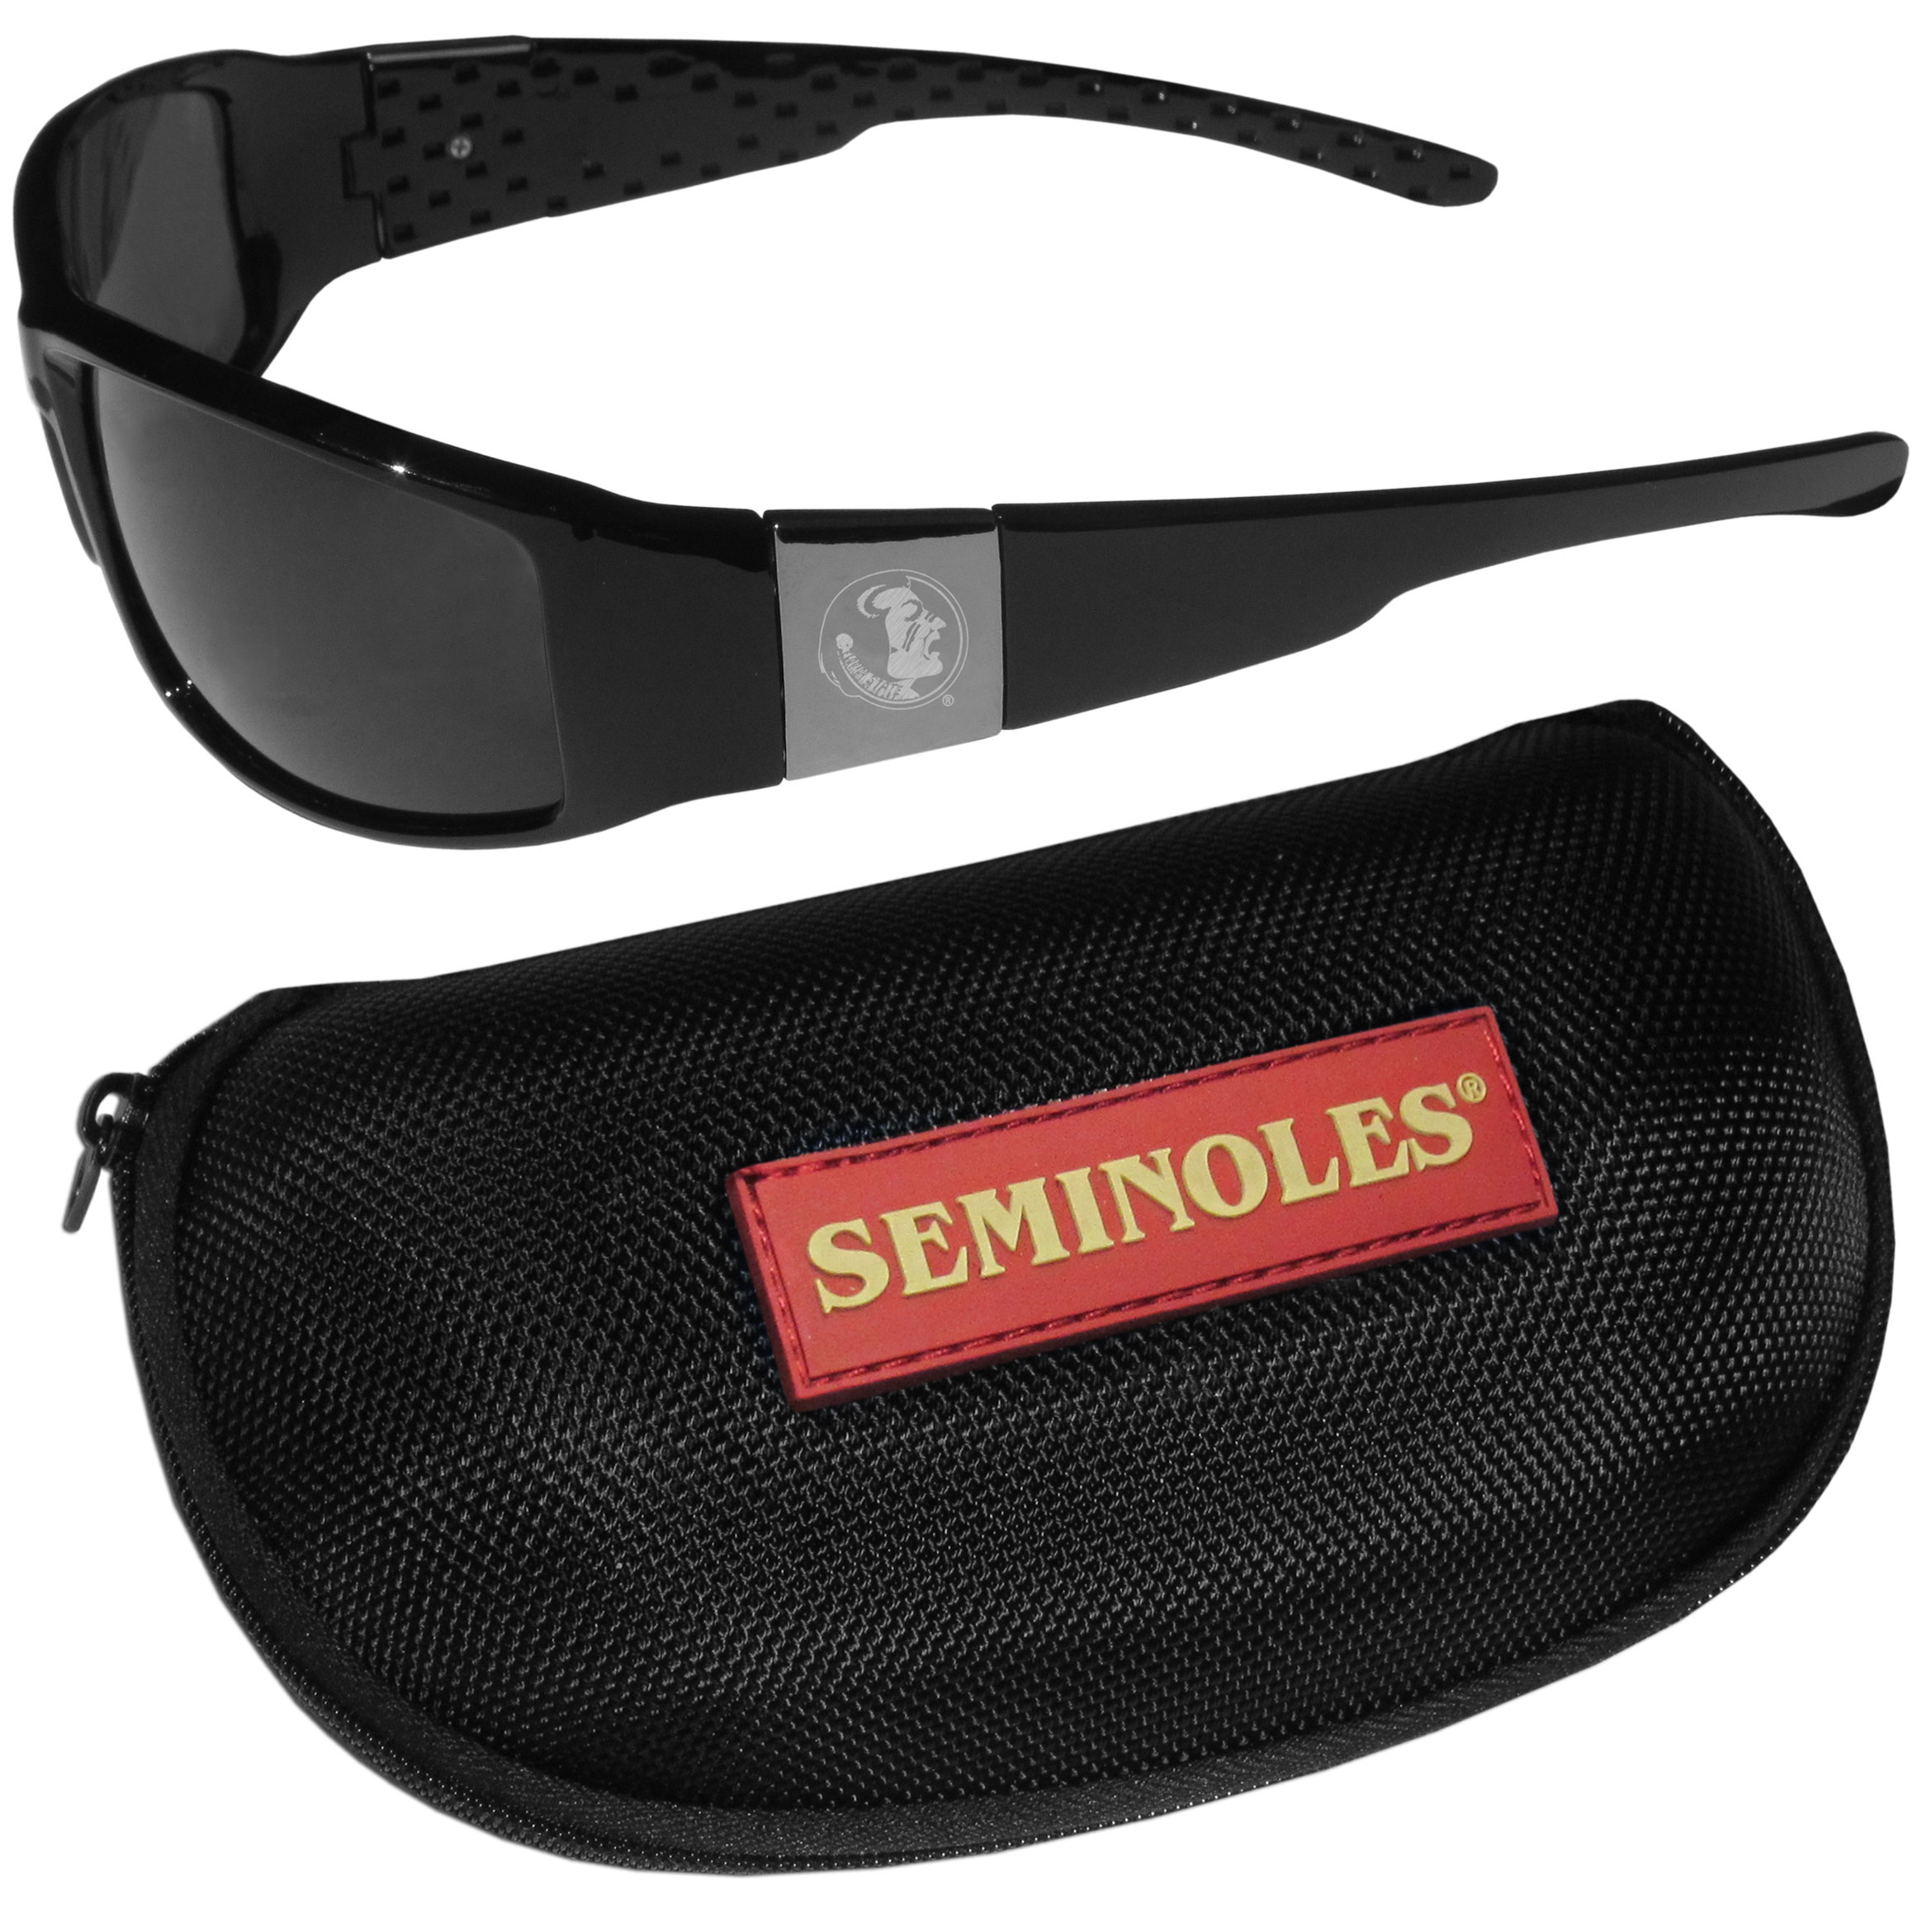 Florida St. Seminoles Chrome Wrap Sunglasses and Zippered Carrying Case - These designer inspired frames have a sleek look in all black with high-polish chrome Florida St. Seminoles shields on each arm with an etched logo. The shades are perfect any outdoor activity like; golfing, driving, hiking, fishing or cheering on the team at a tailgating event or an at home game day BBQ with a lens rating of 100% UVA/UVB for maximum UV protection. The high-quality frames are as durable as they are fashionable and with their classic look they are perfect fan accessory that can be worn everyday for every occasion. The shades come with a zippered hard shell case to keep your sunglasses safe.